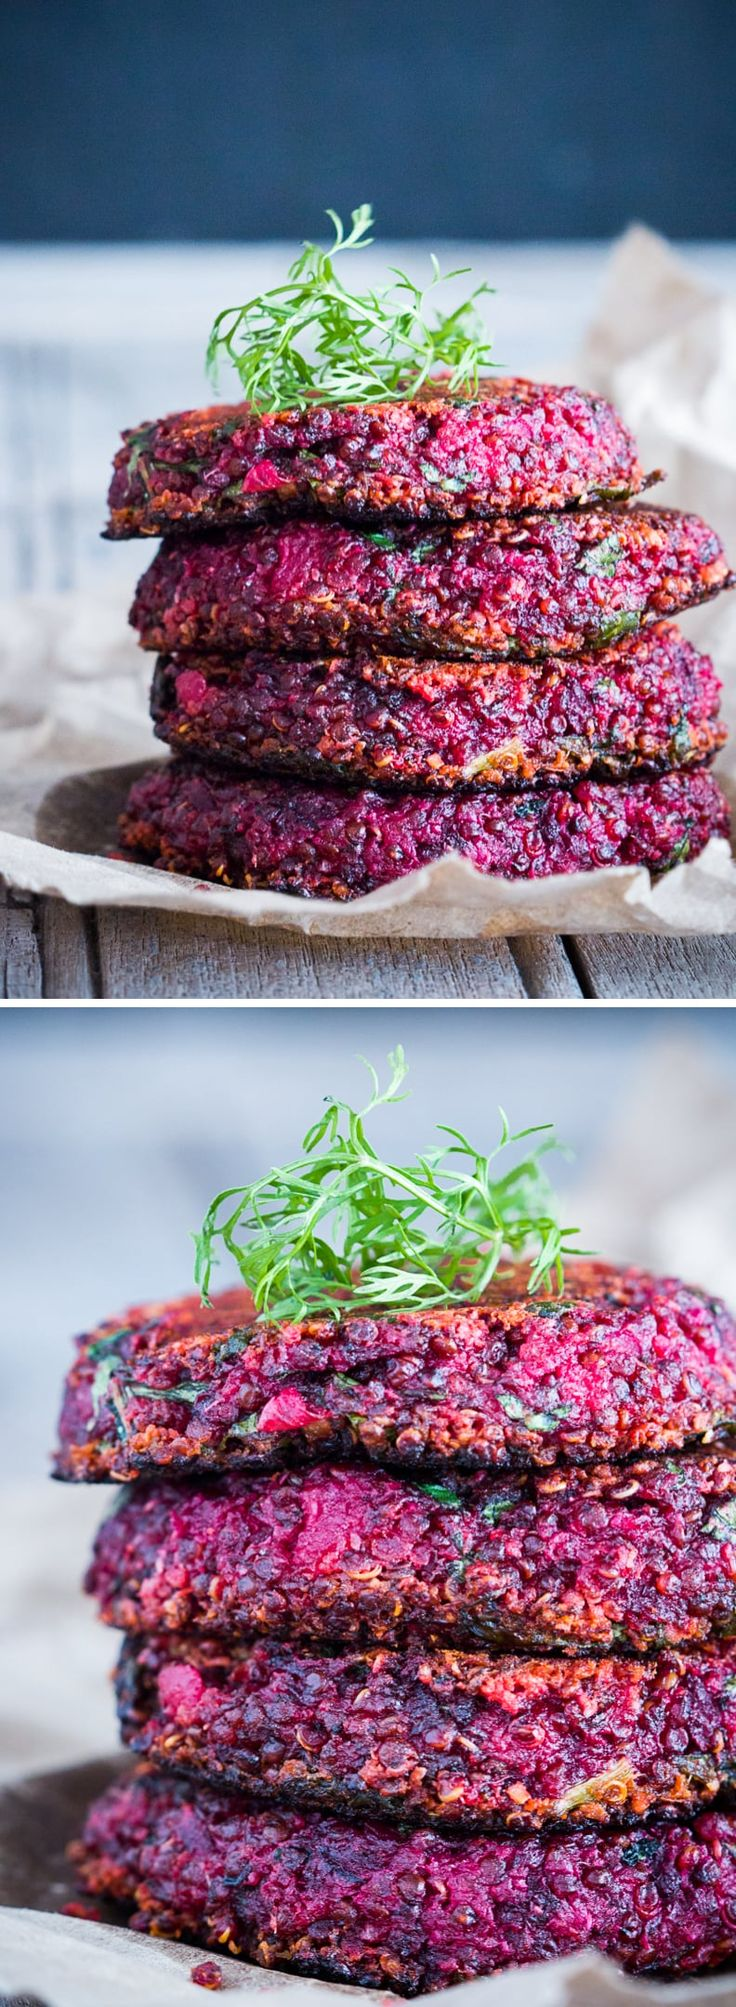 A healthy snacking option, these beet and goat cheese quinoa patties are a great…